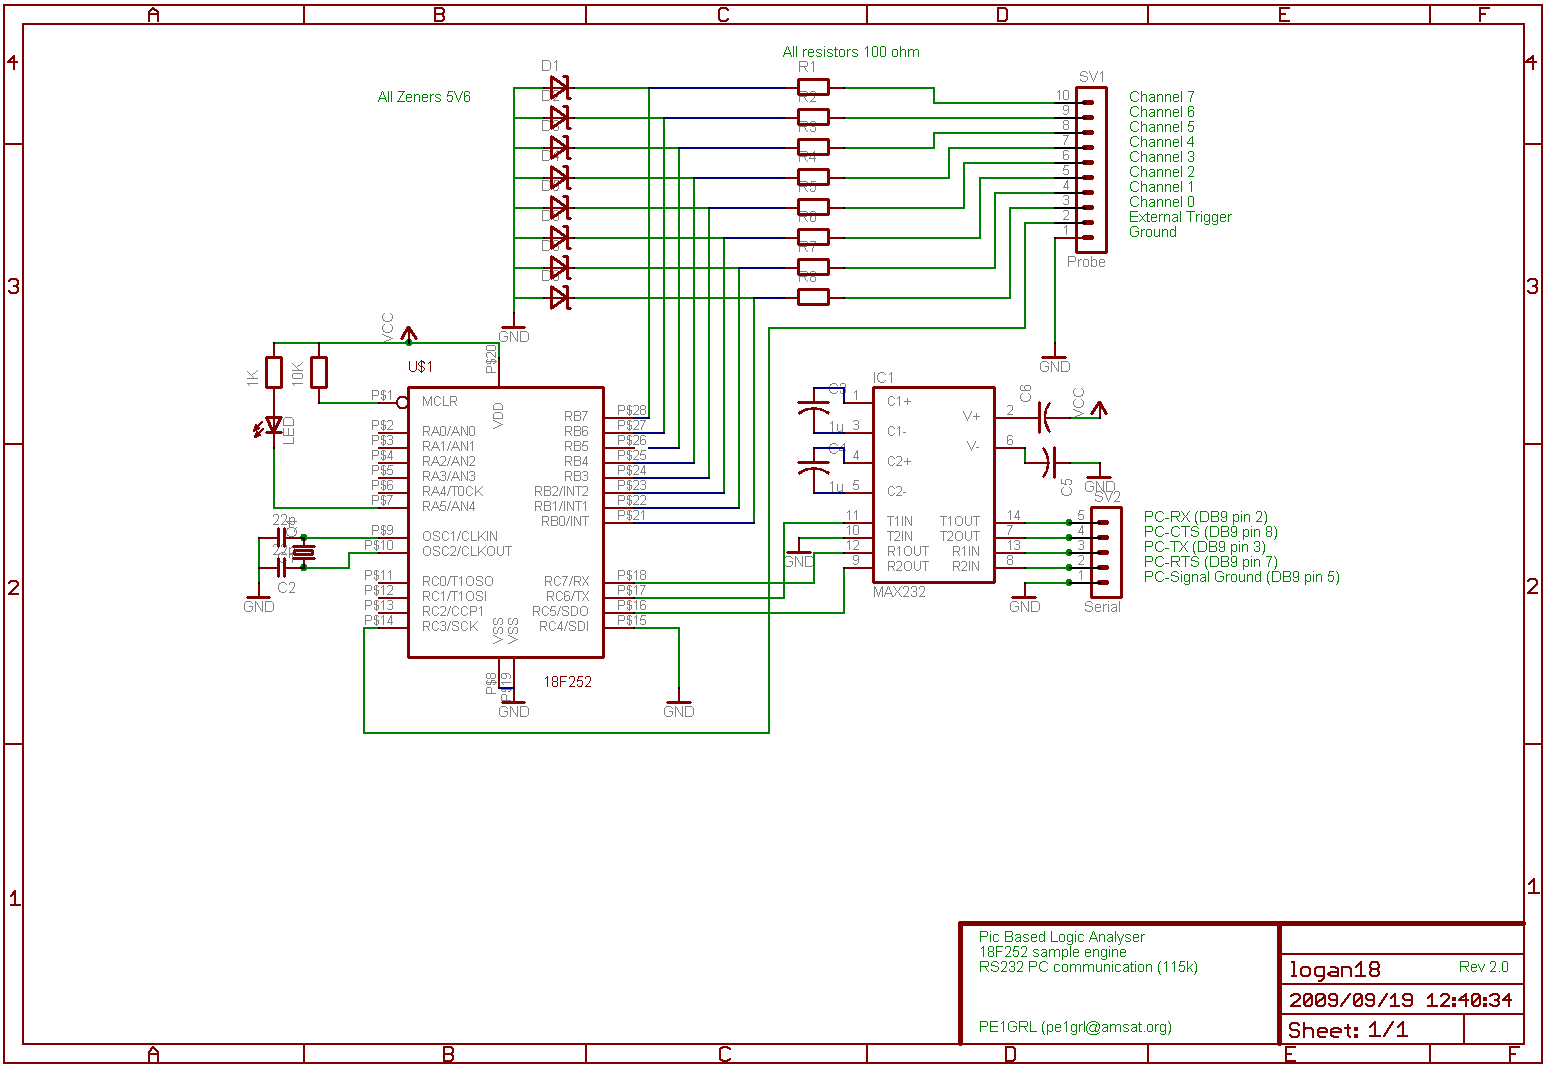 Picla18 18f252 Based Capture Device Rs232 Schematic Click Here For The